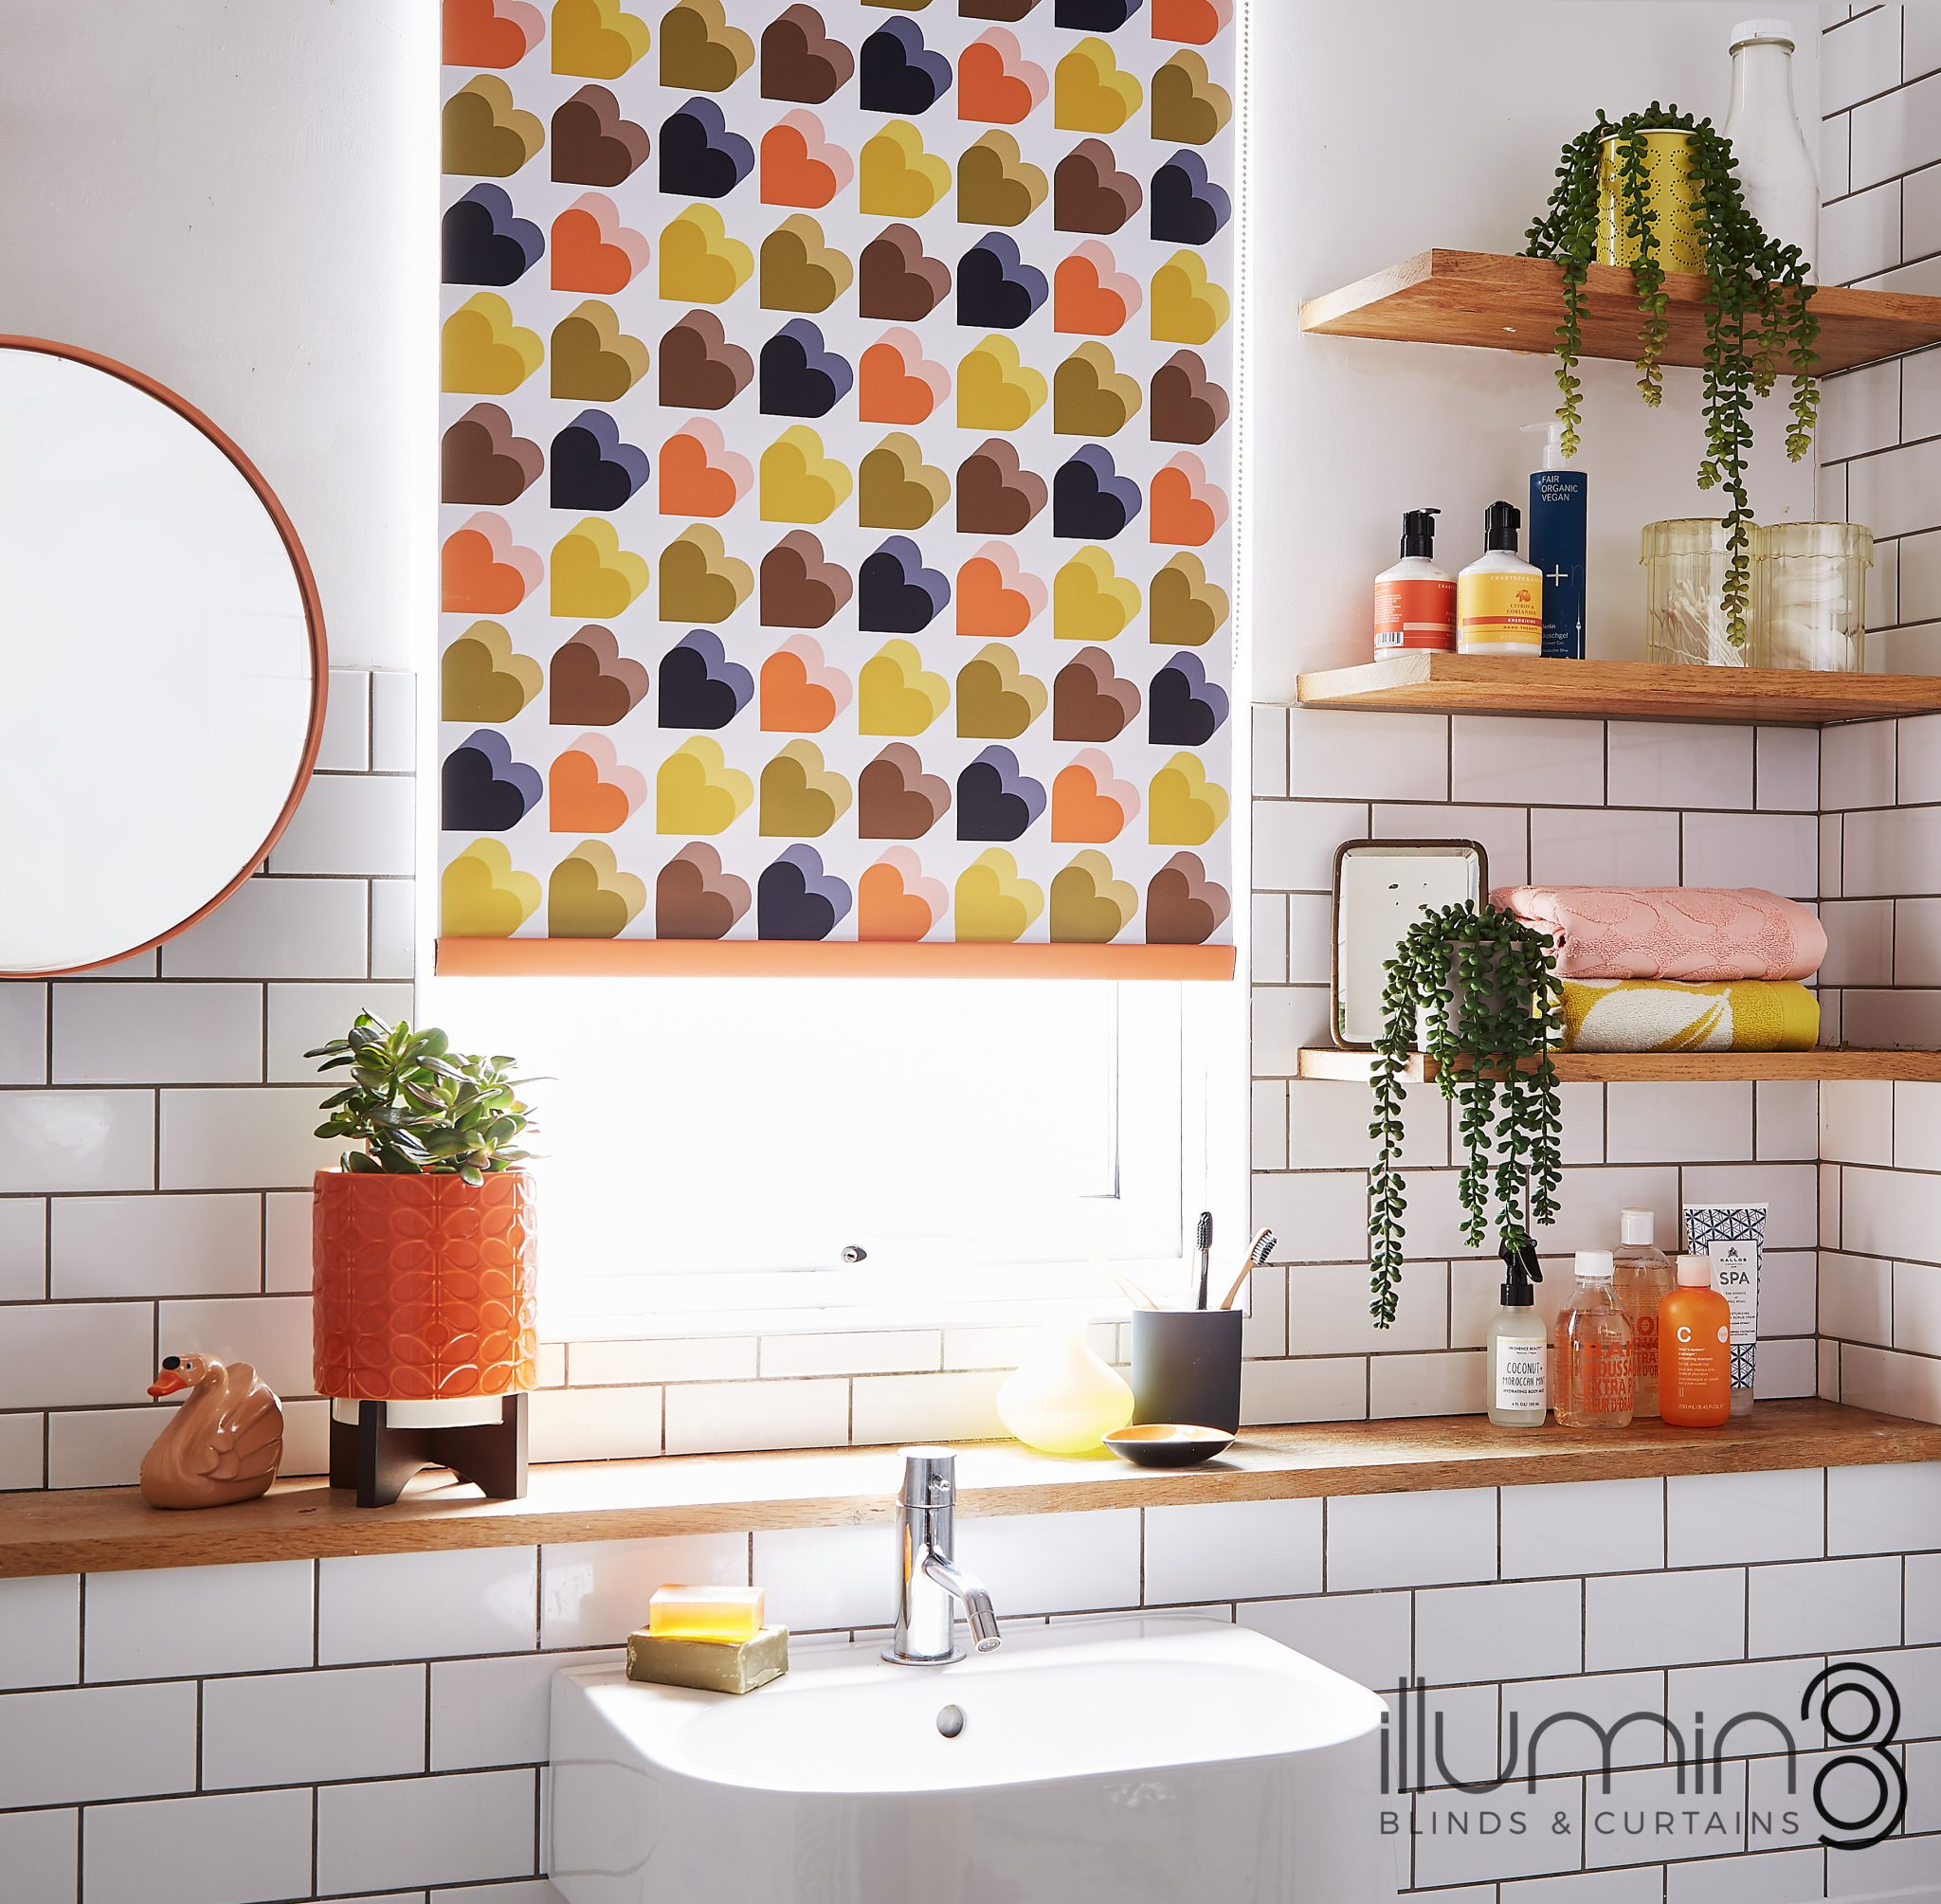 Orla Kiely Blinds heart roller blinds for bathrooms